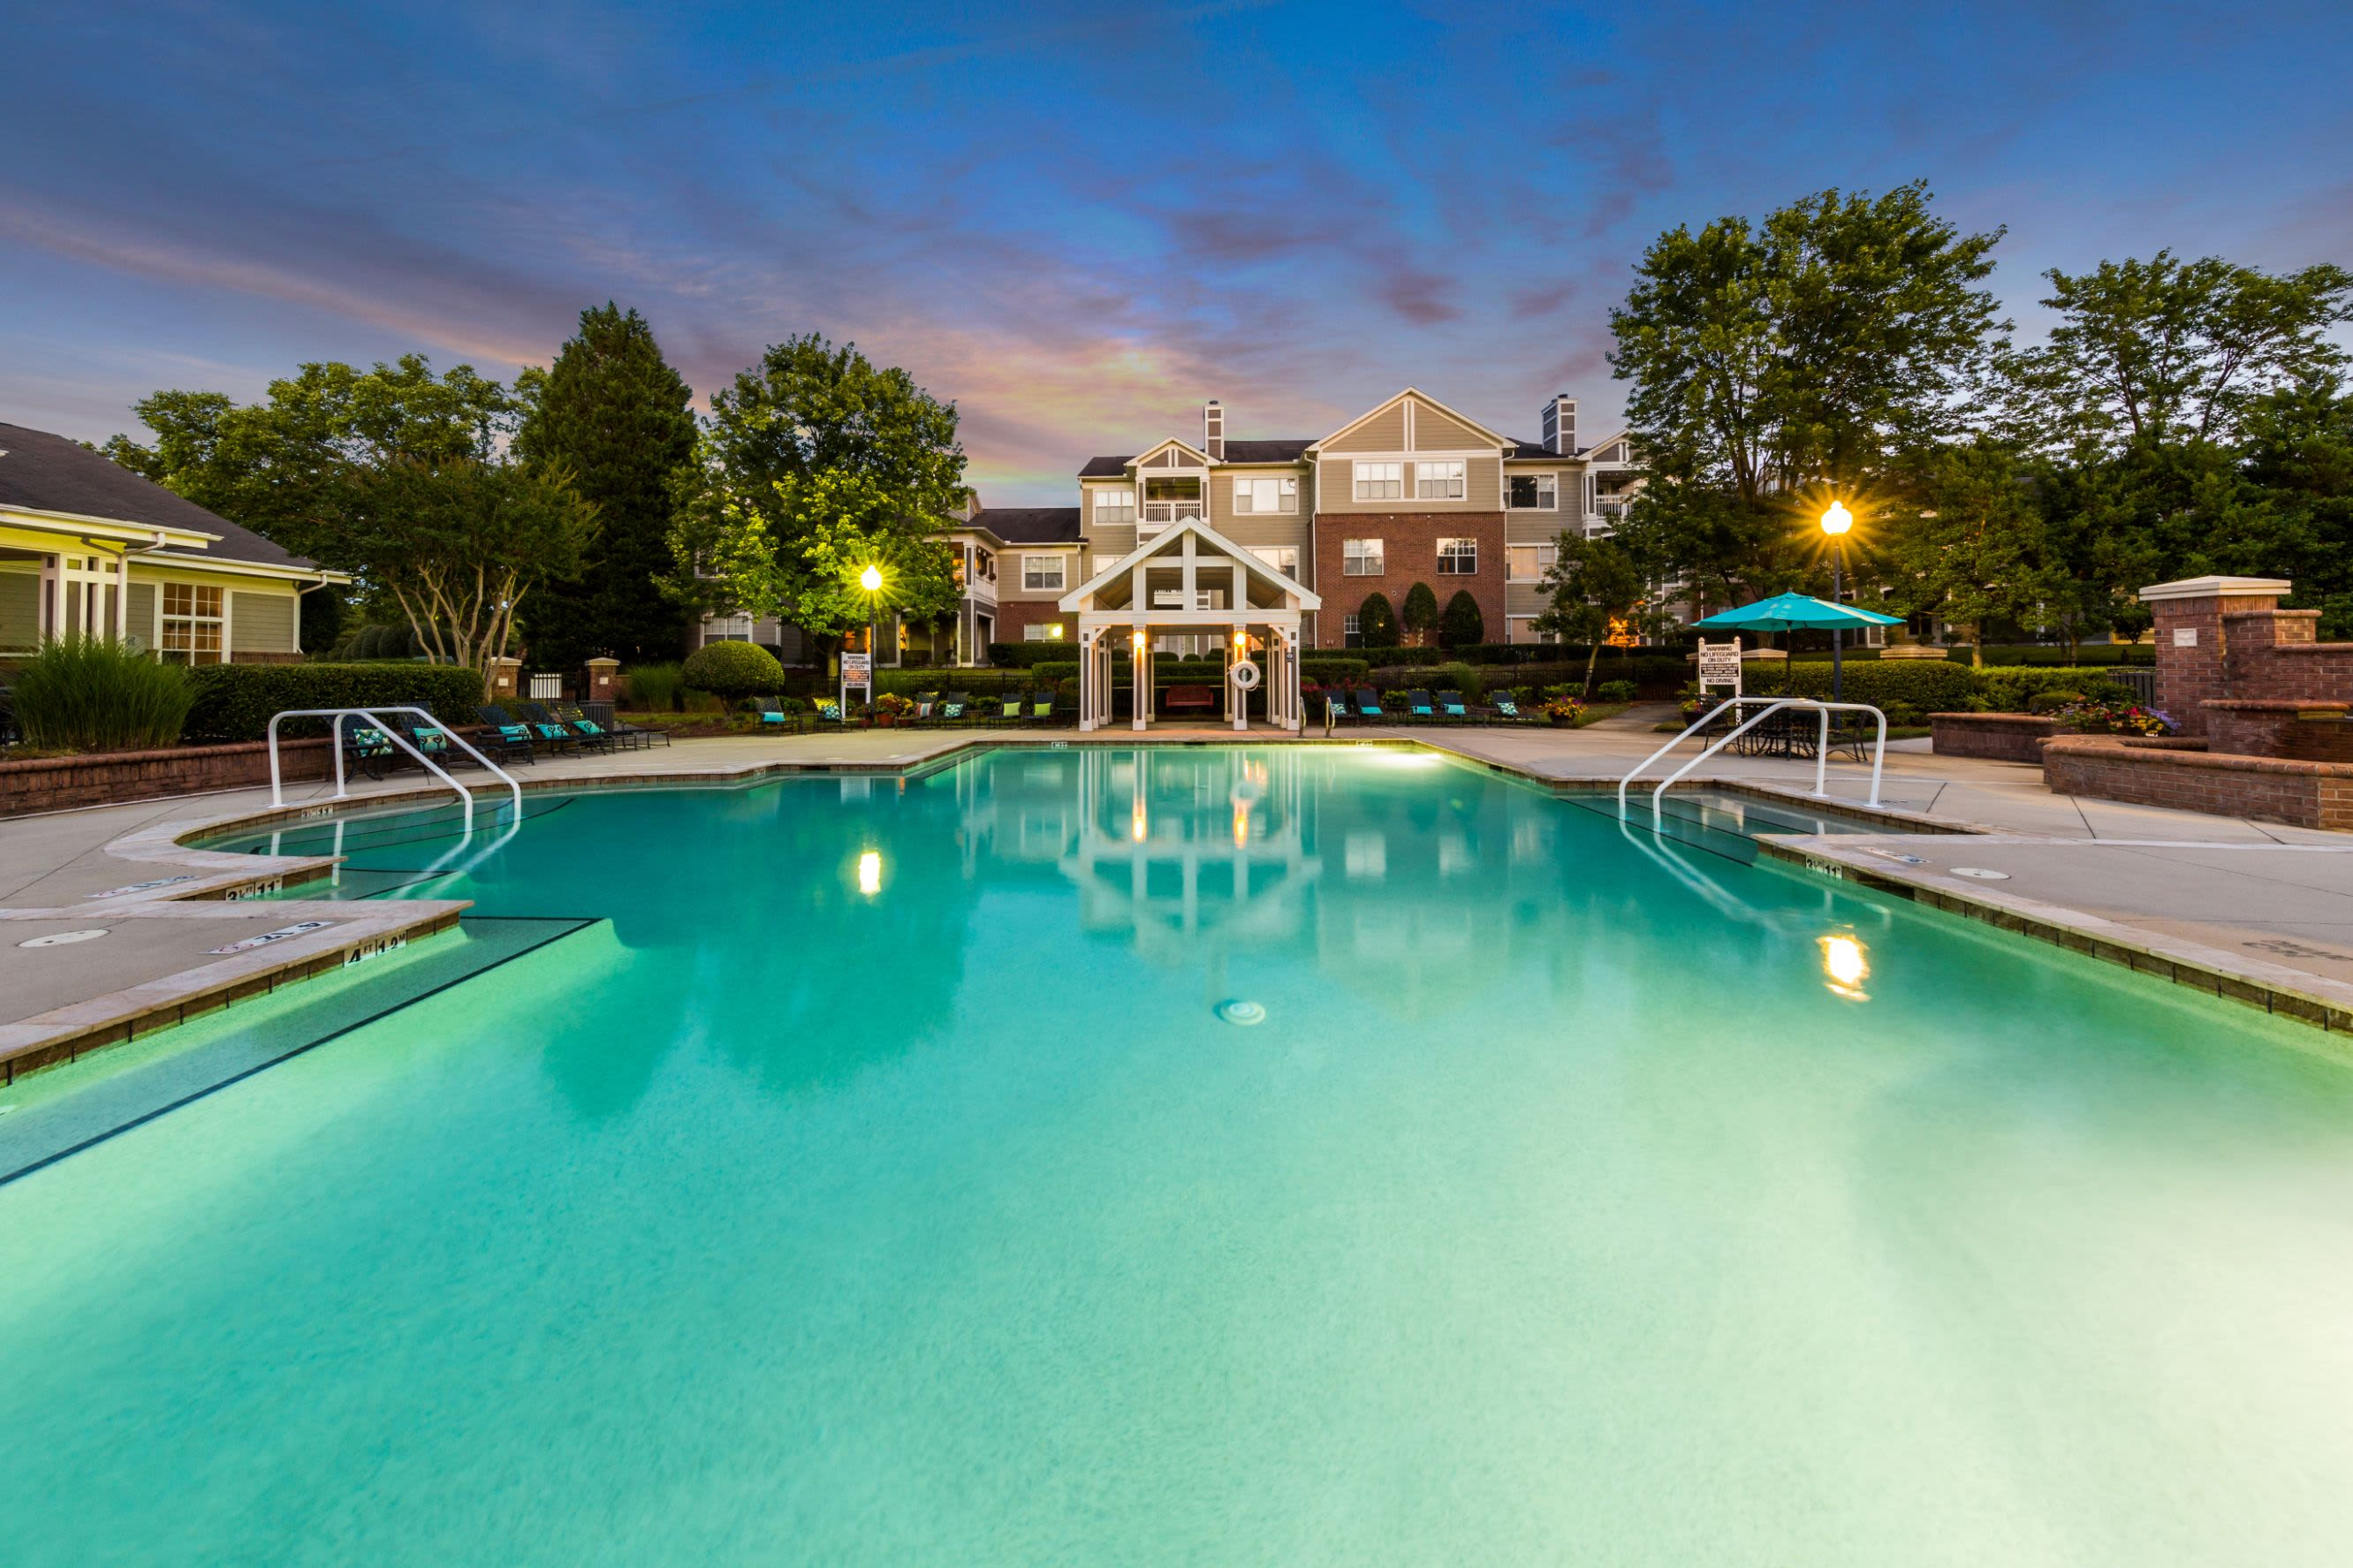 Large swimming pool at dusk The Preserve at Ballantyne Commons in Charlotte, North Carolina